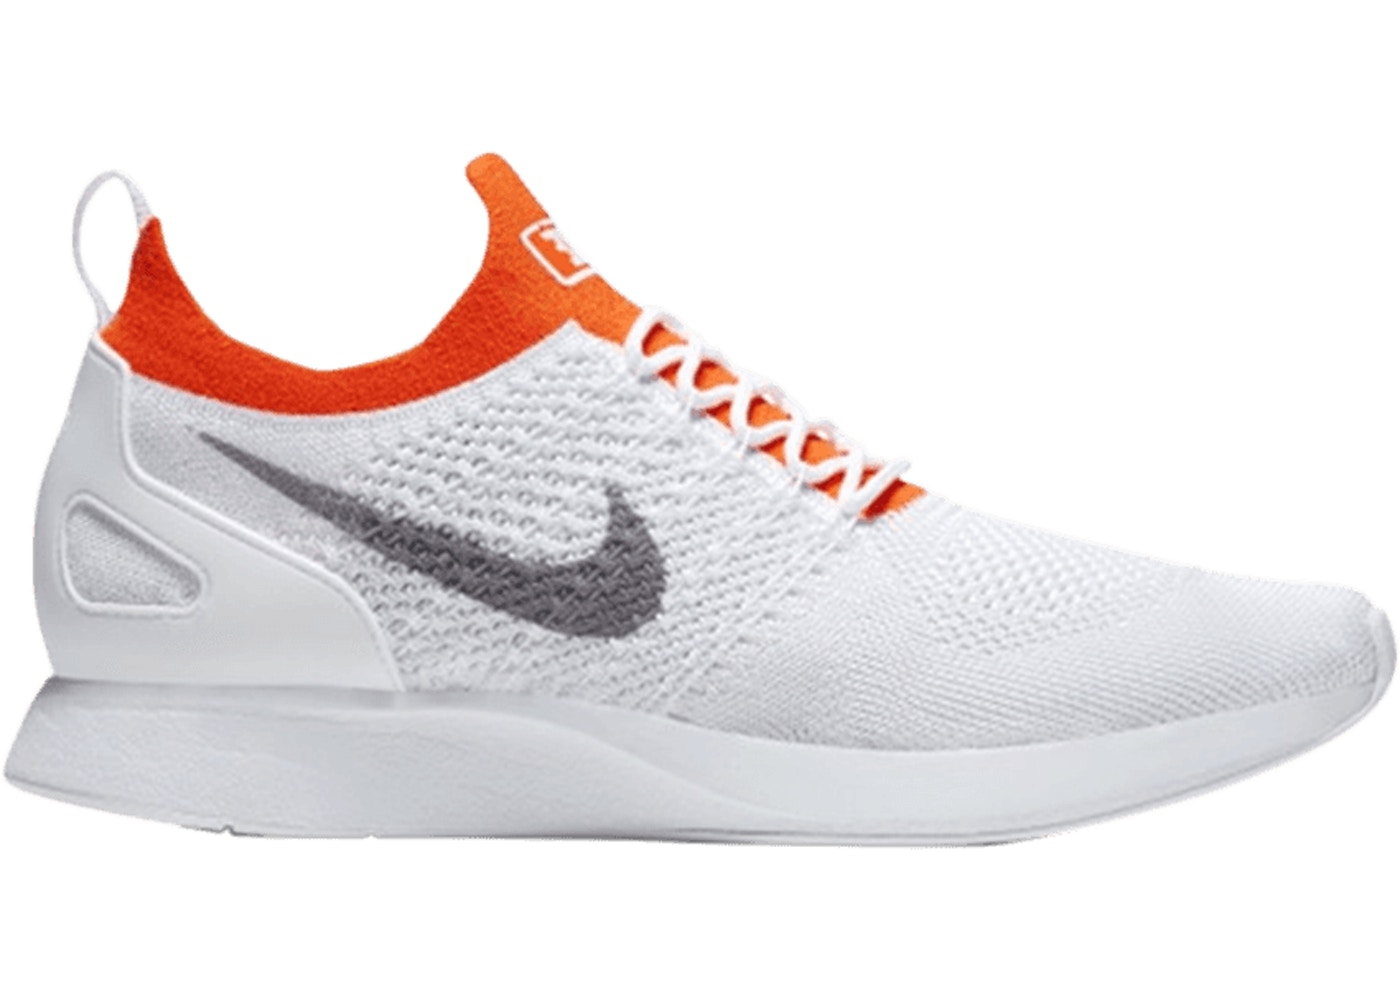 640076afdbef Air Zoom Mariah Flyknit Racer Platinum Orange - 918264-012